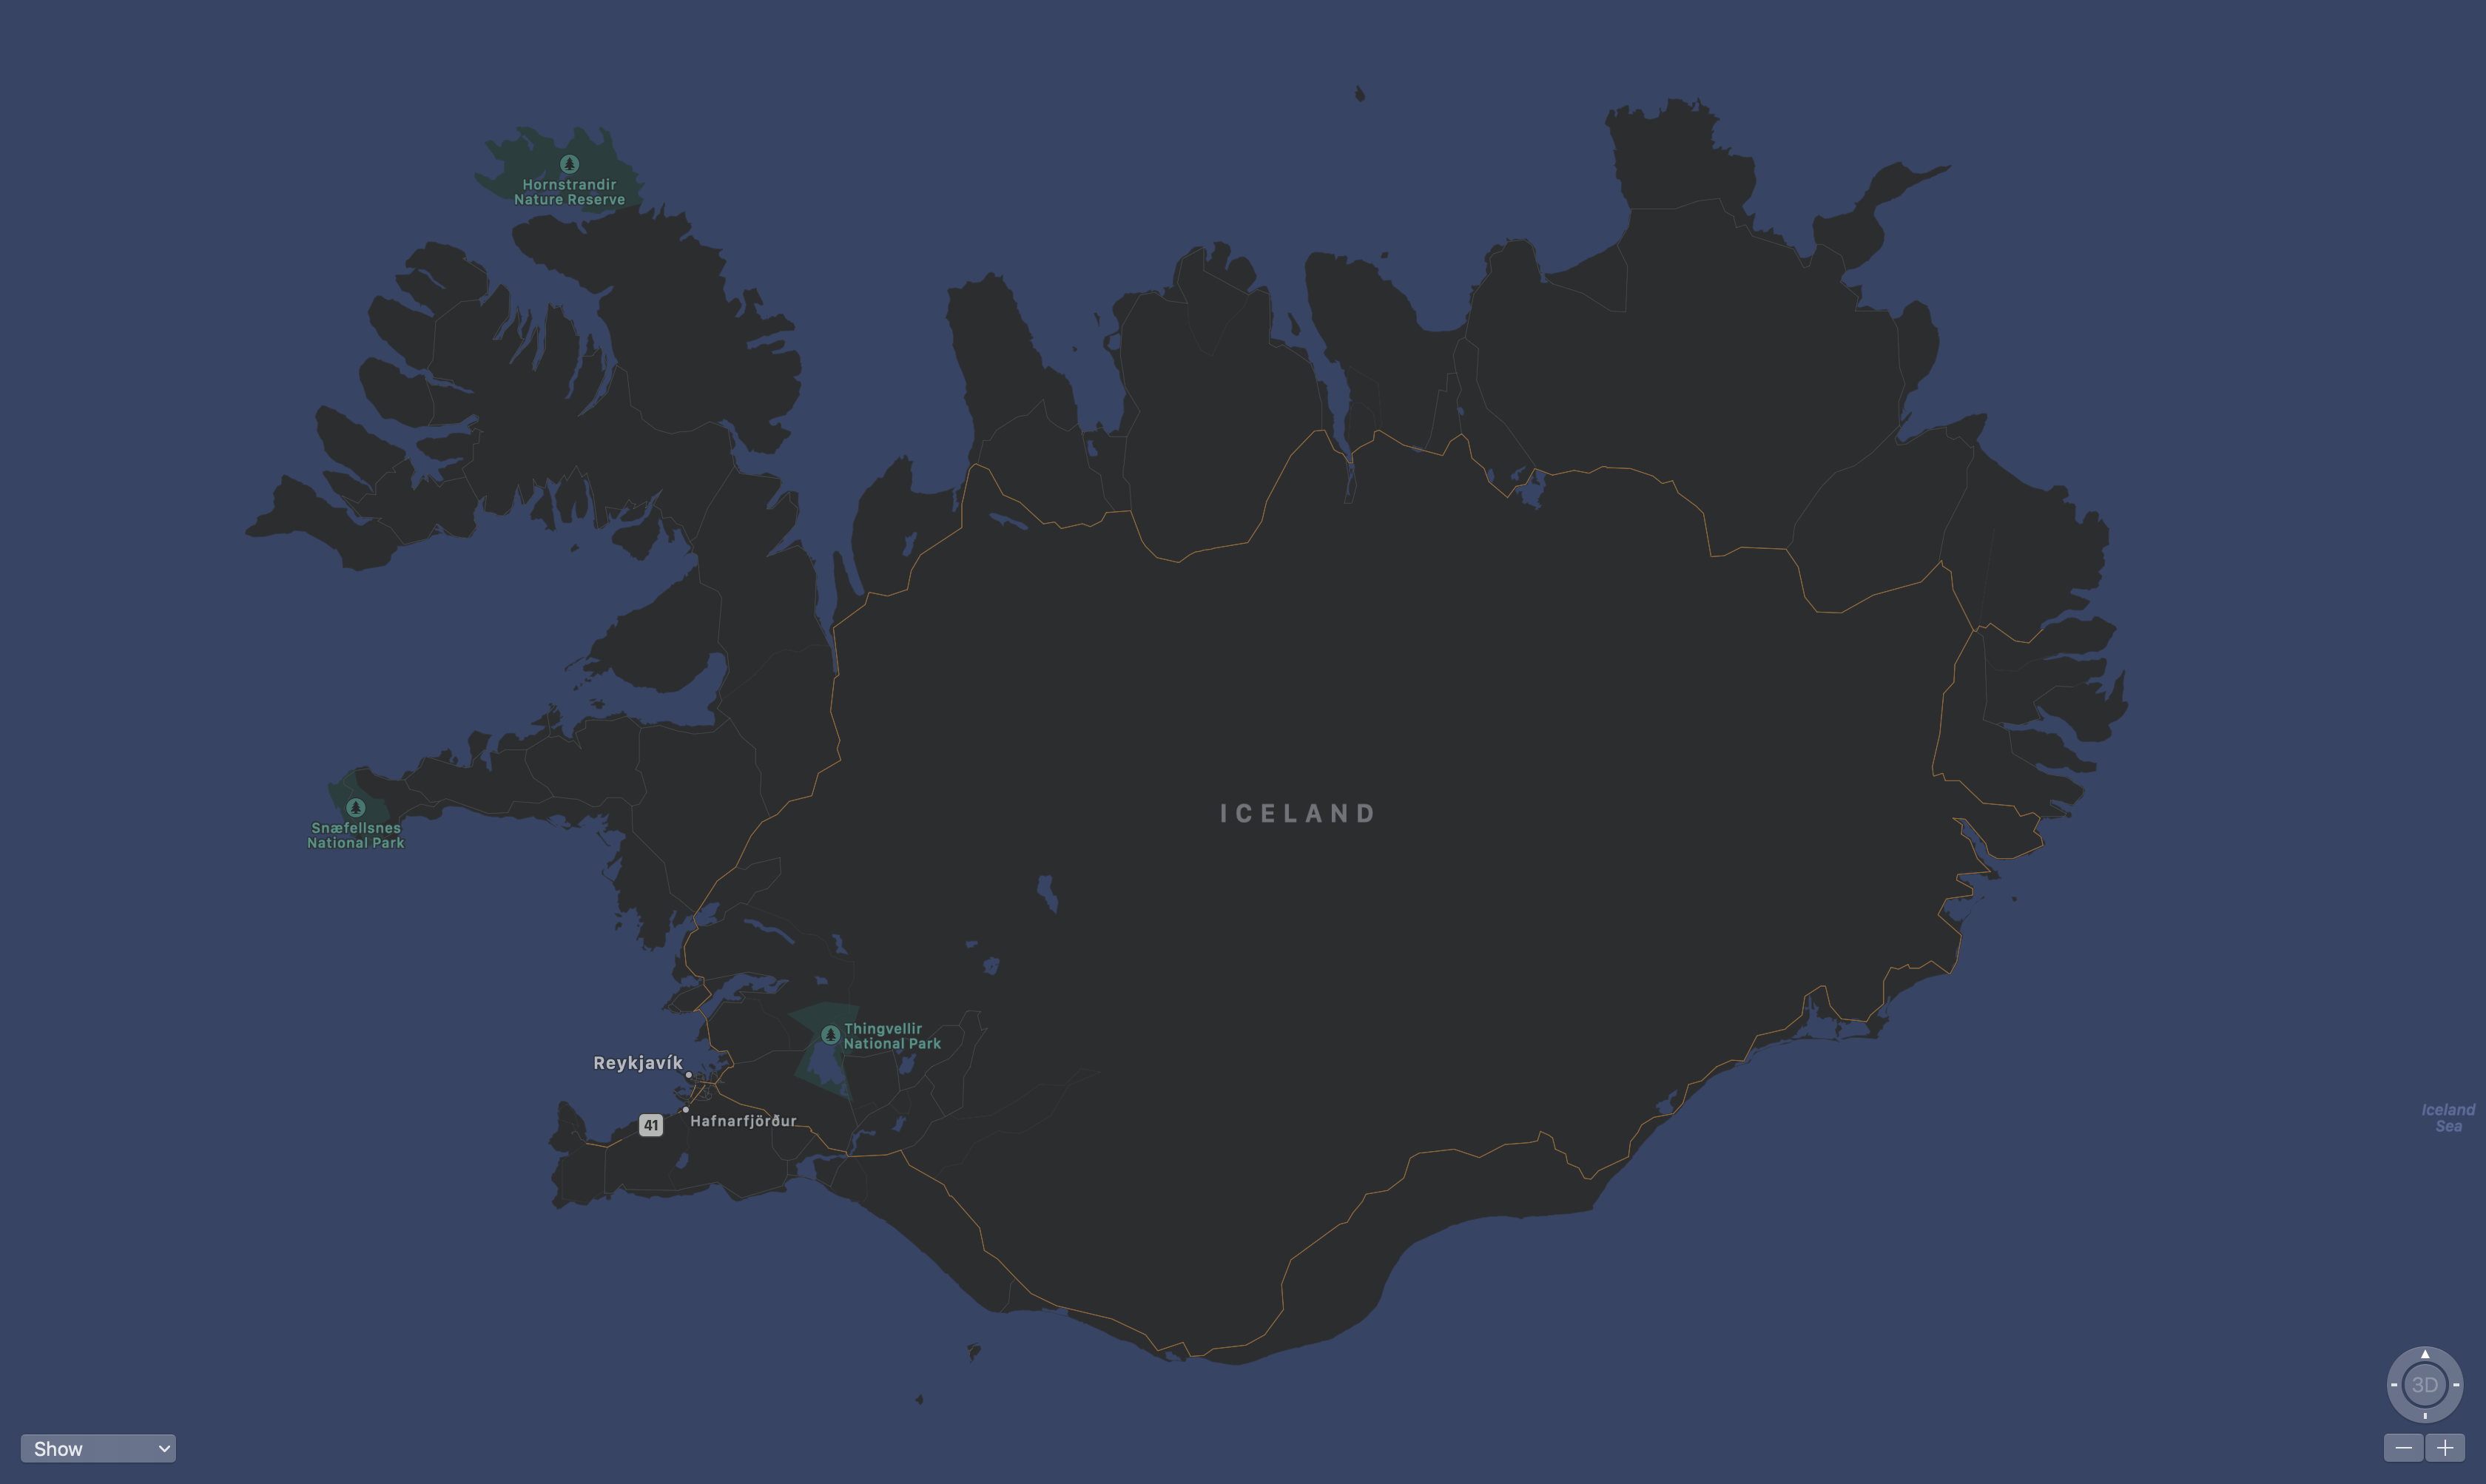 map screen shot of Iceland